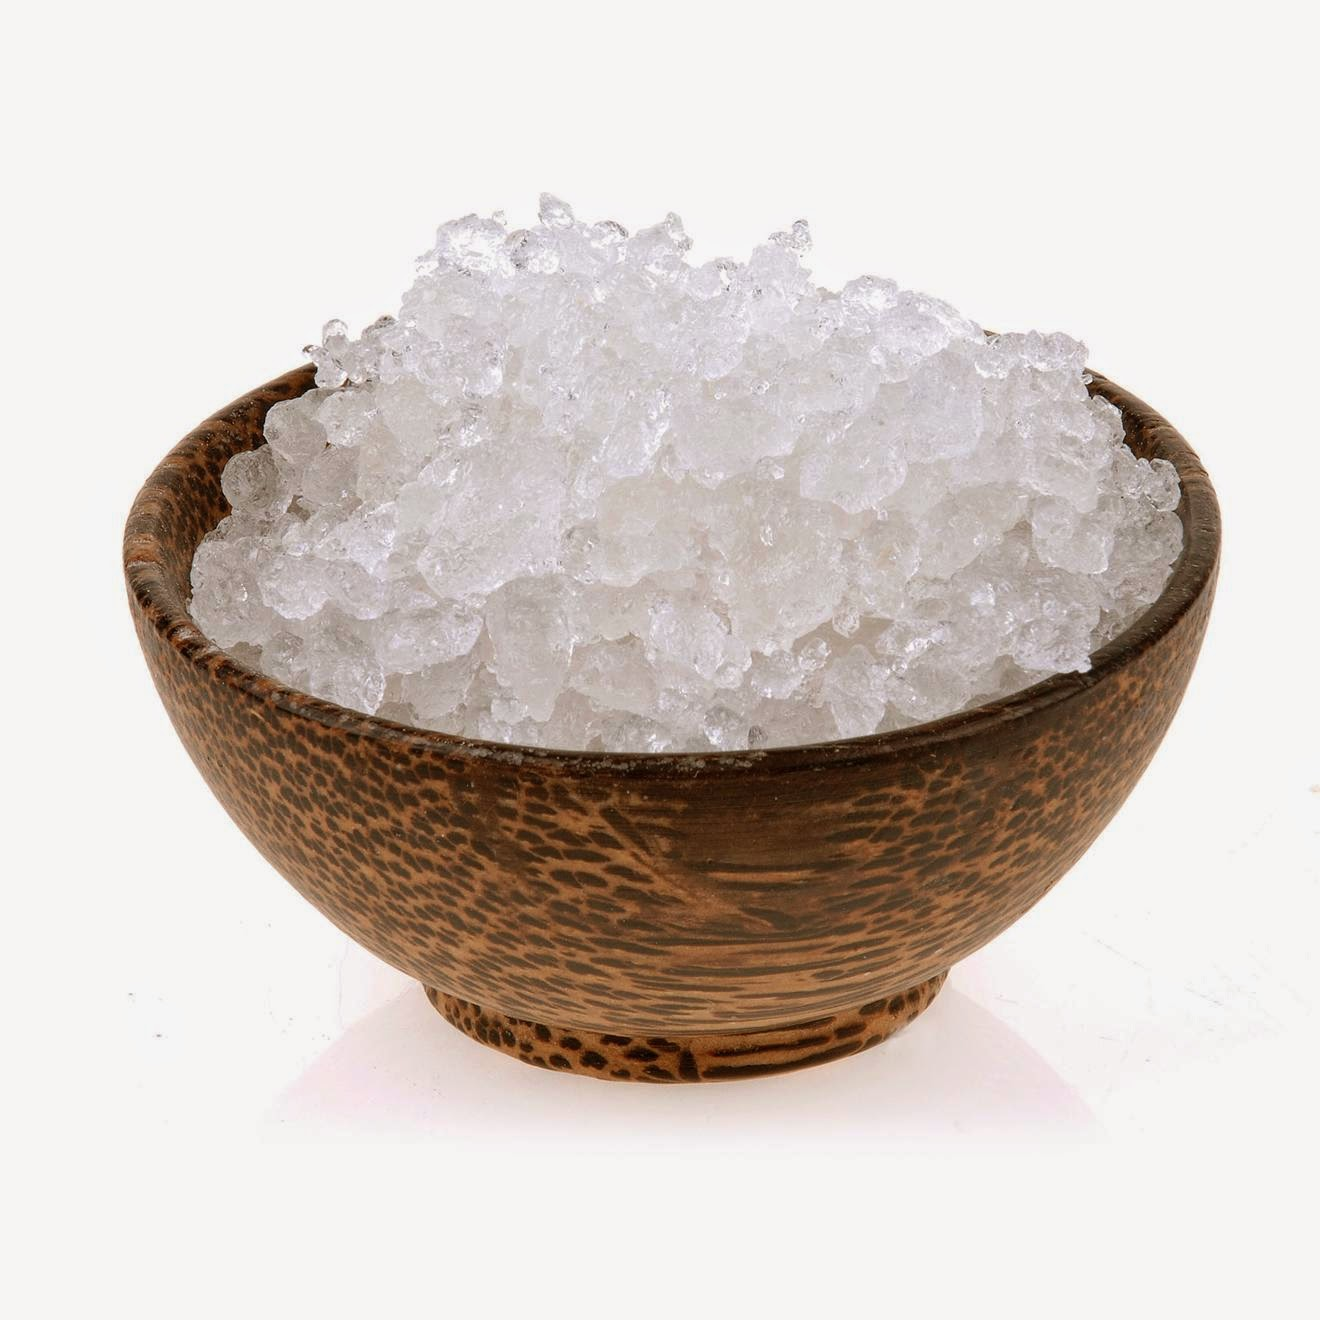 how to use dead sea salt for psoriasis